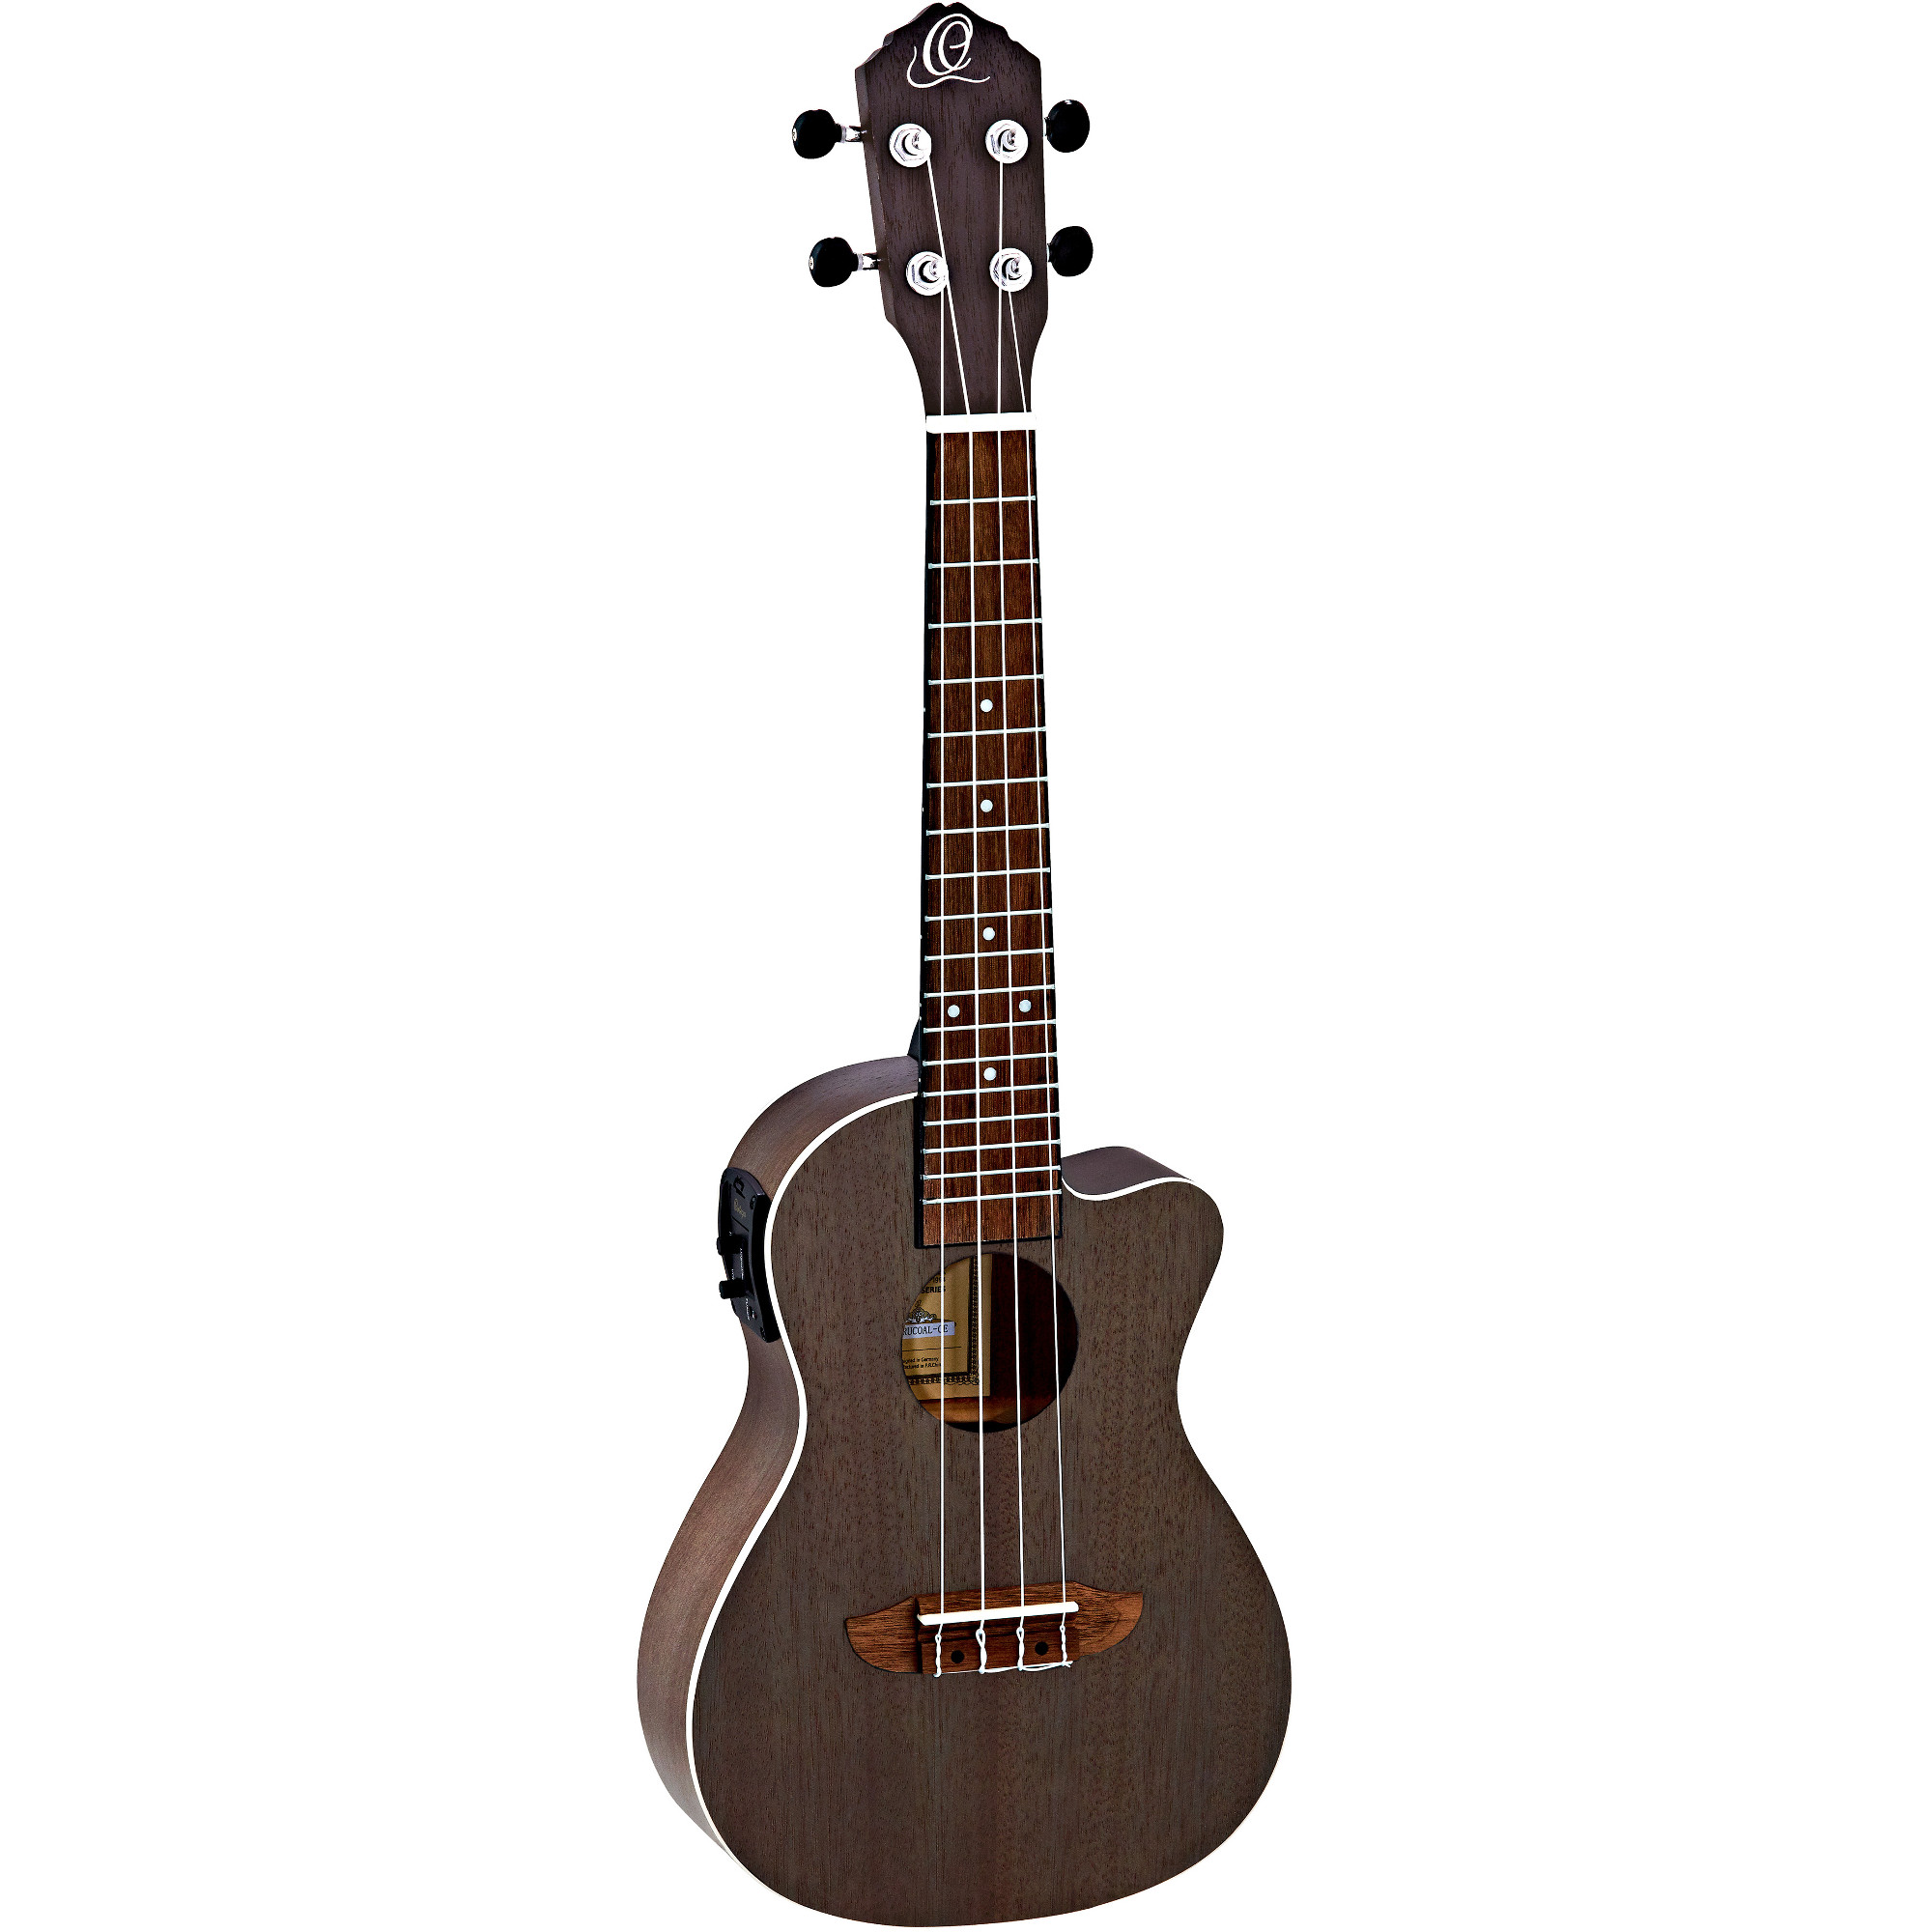 Ortega Earth Series RUCOAL CE concert ukulele, brown